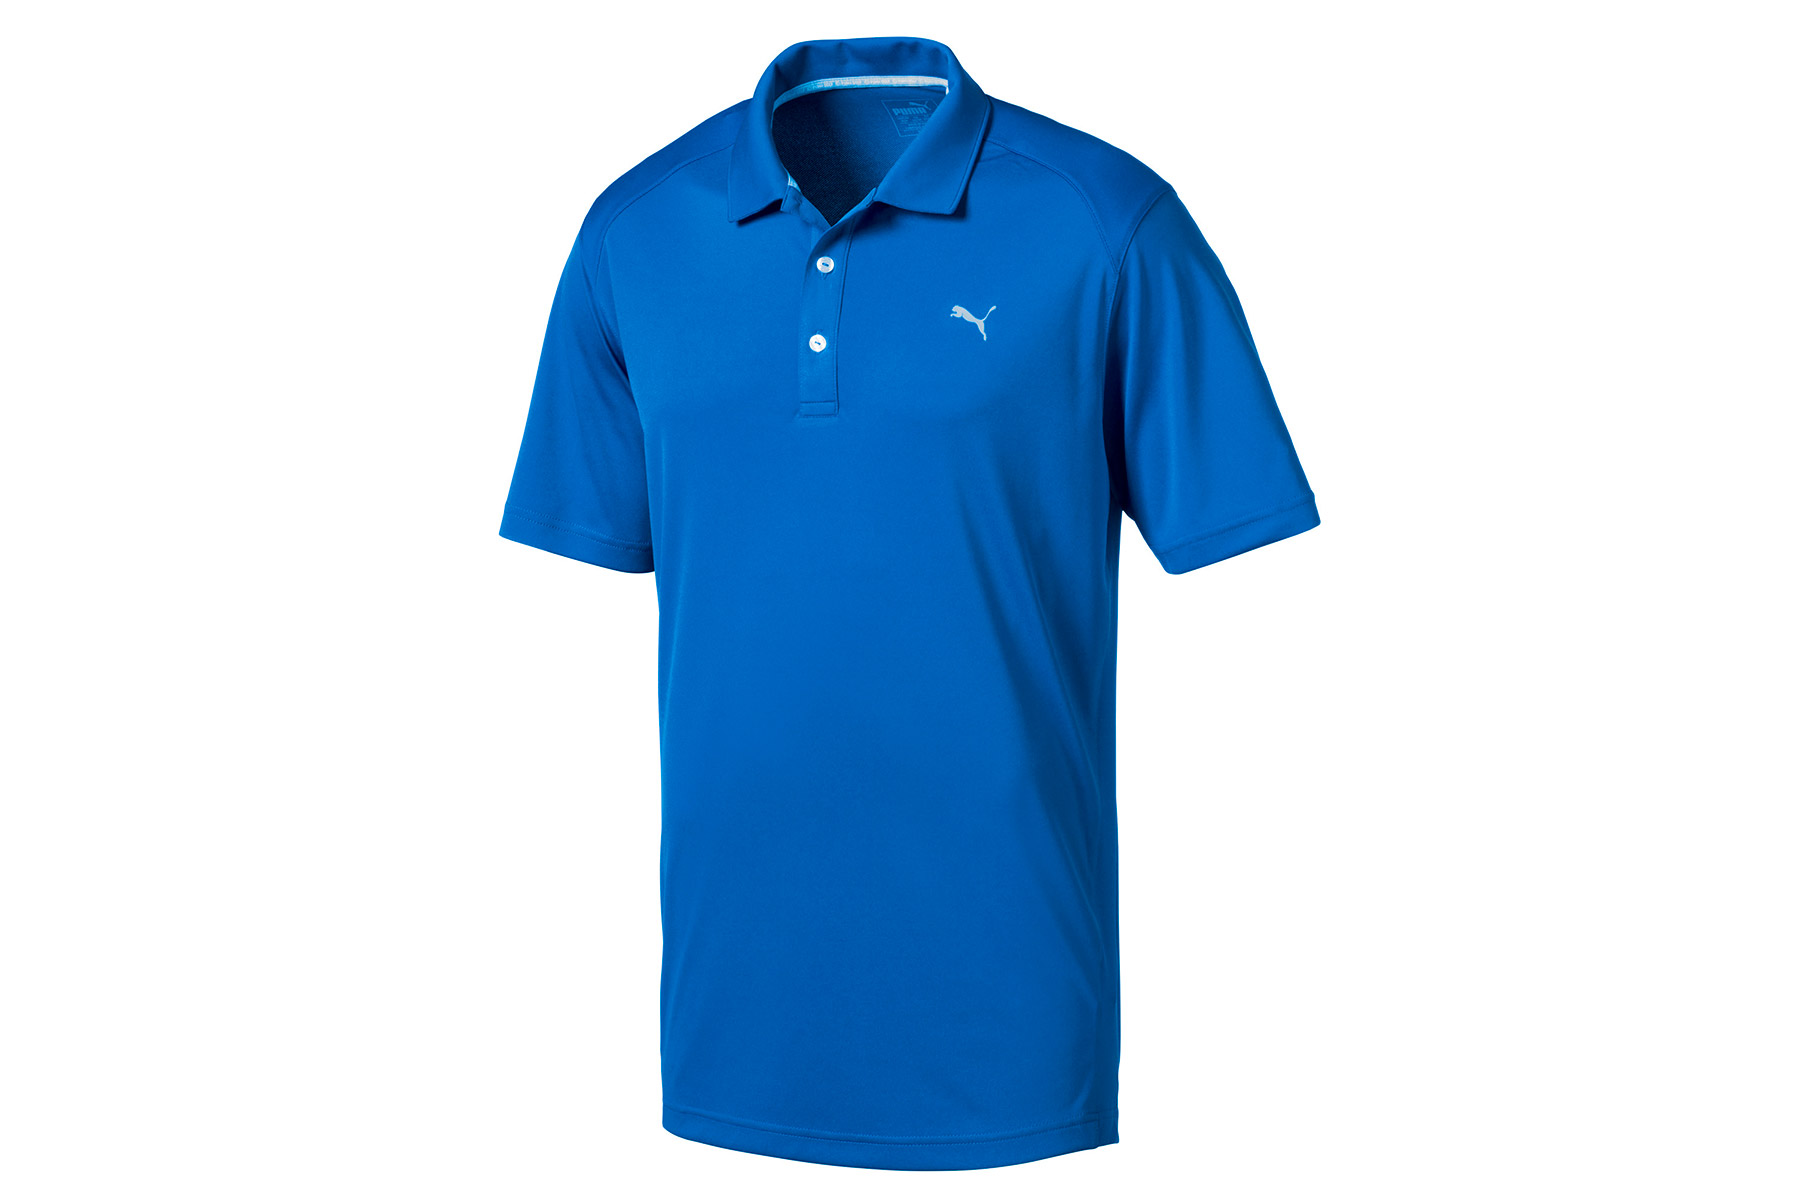 Puma golf pounce polo shirt from american golf for Puma golf polo shirts